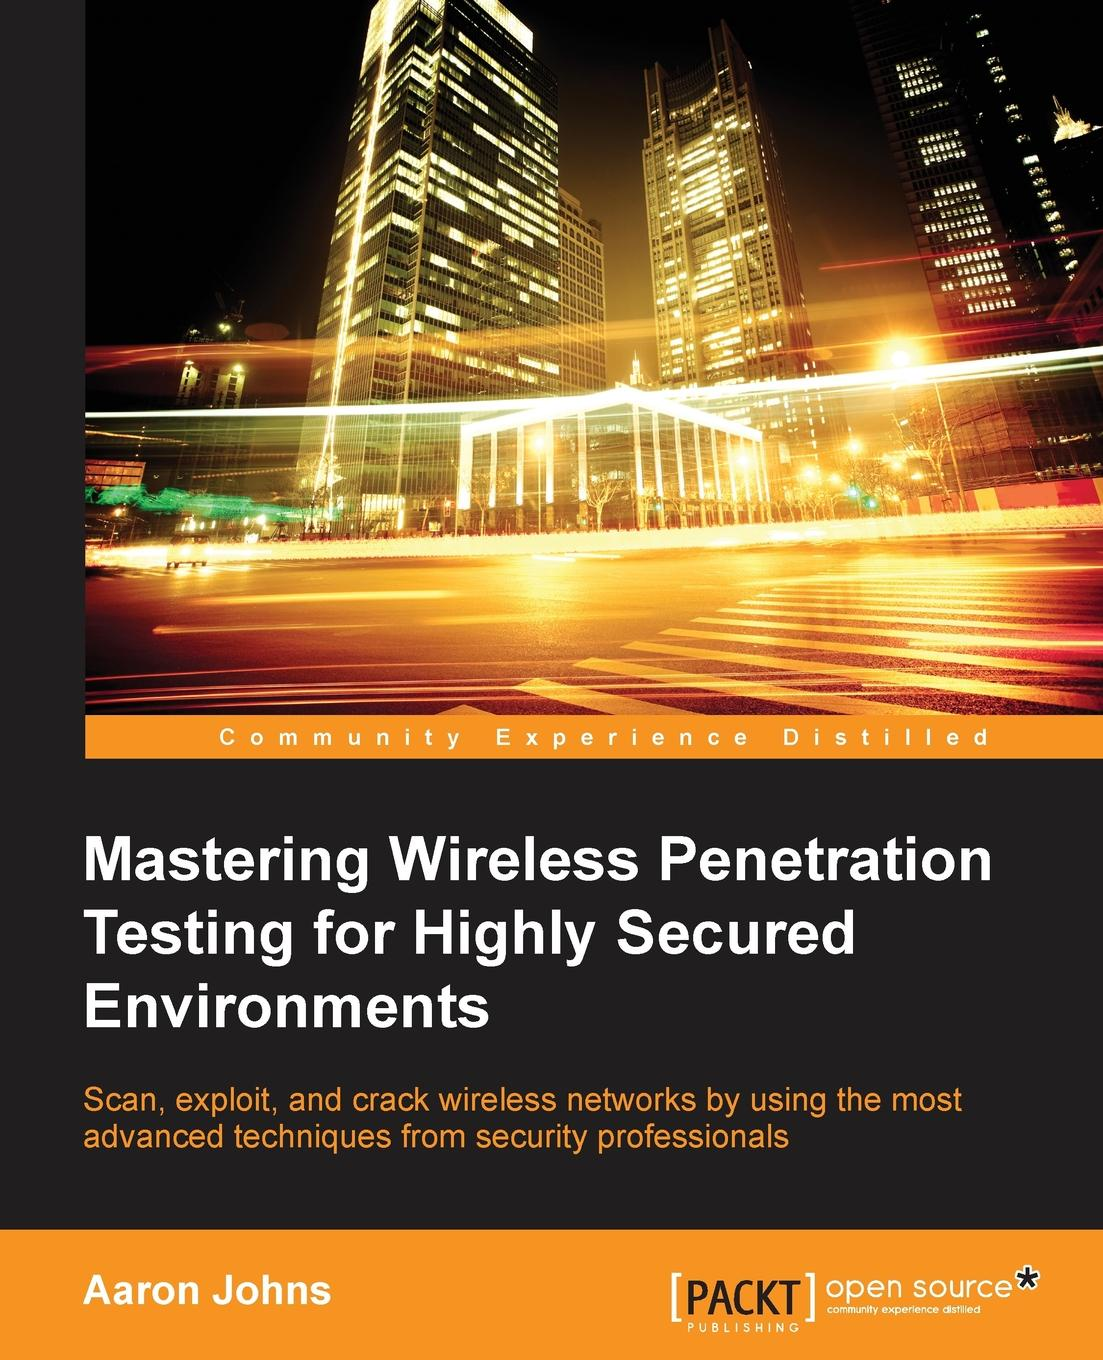 Aaron Johns Mastering Wireless Penetration Testing for Highly-Secured Environments